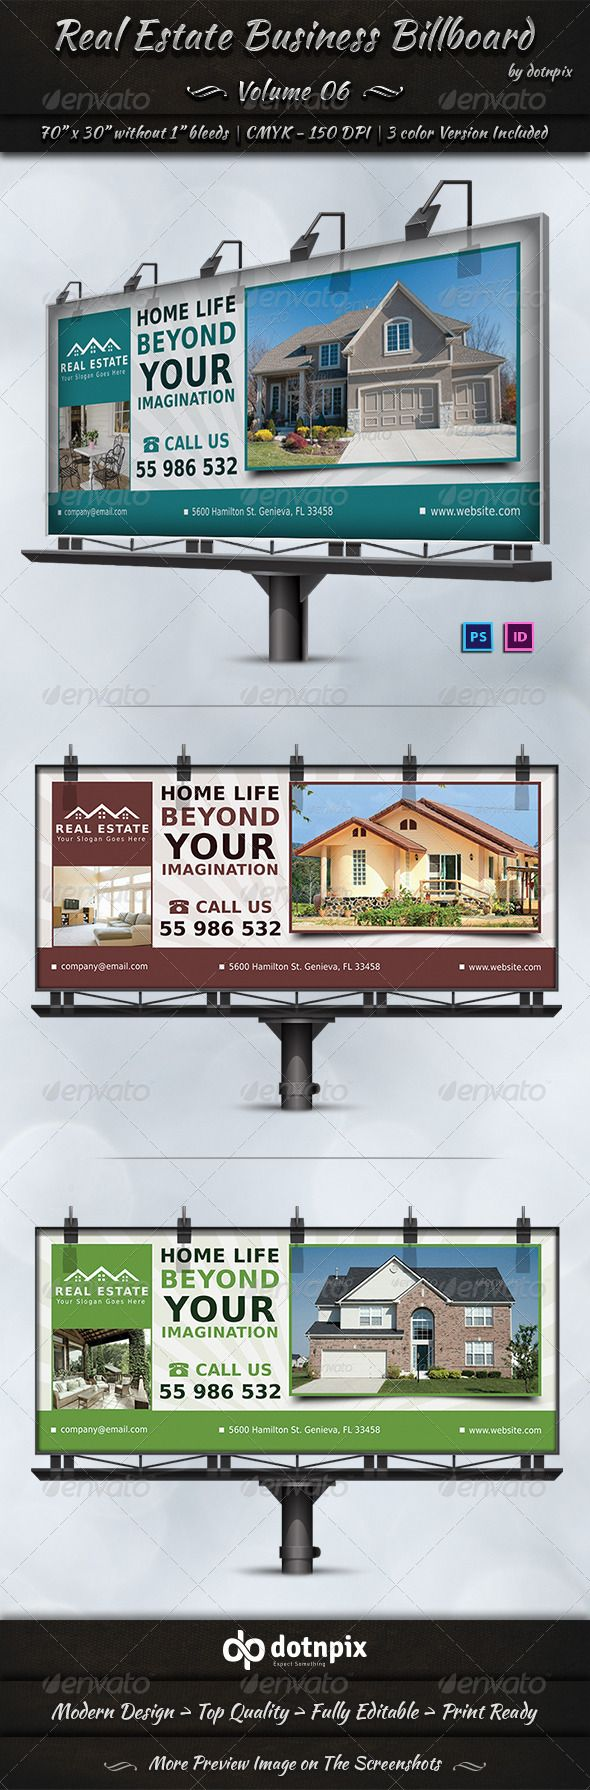 top ideas about real estate ads real estate real estate business billboard volume 6